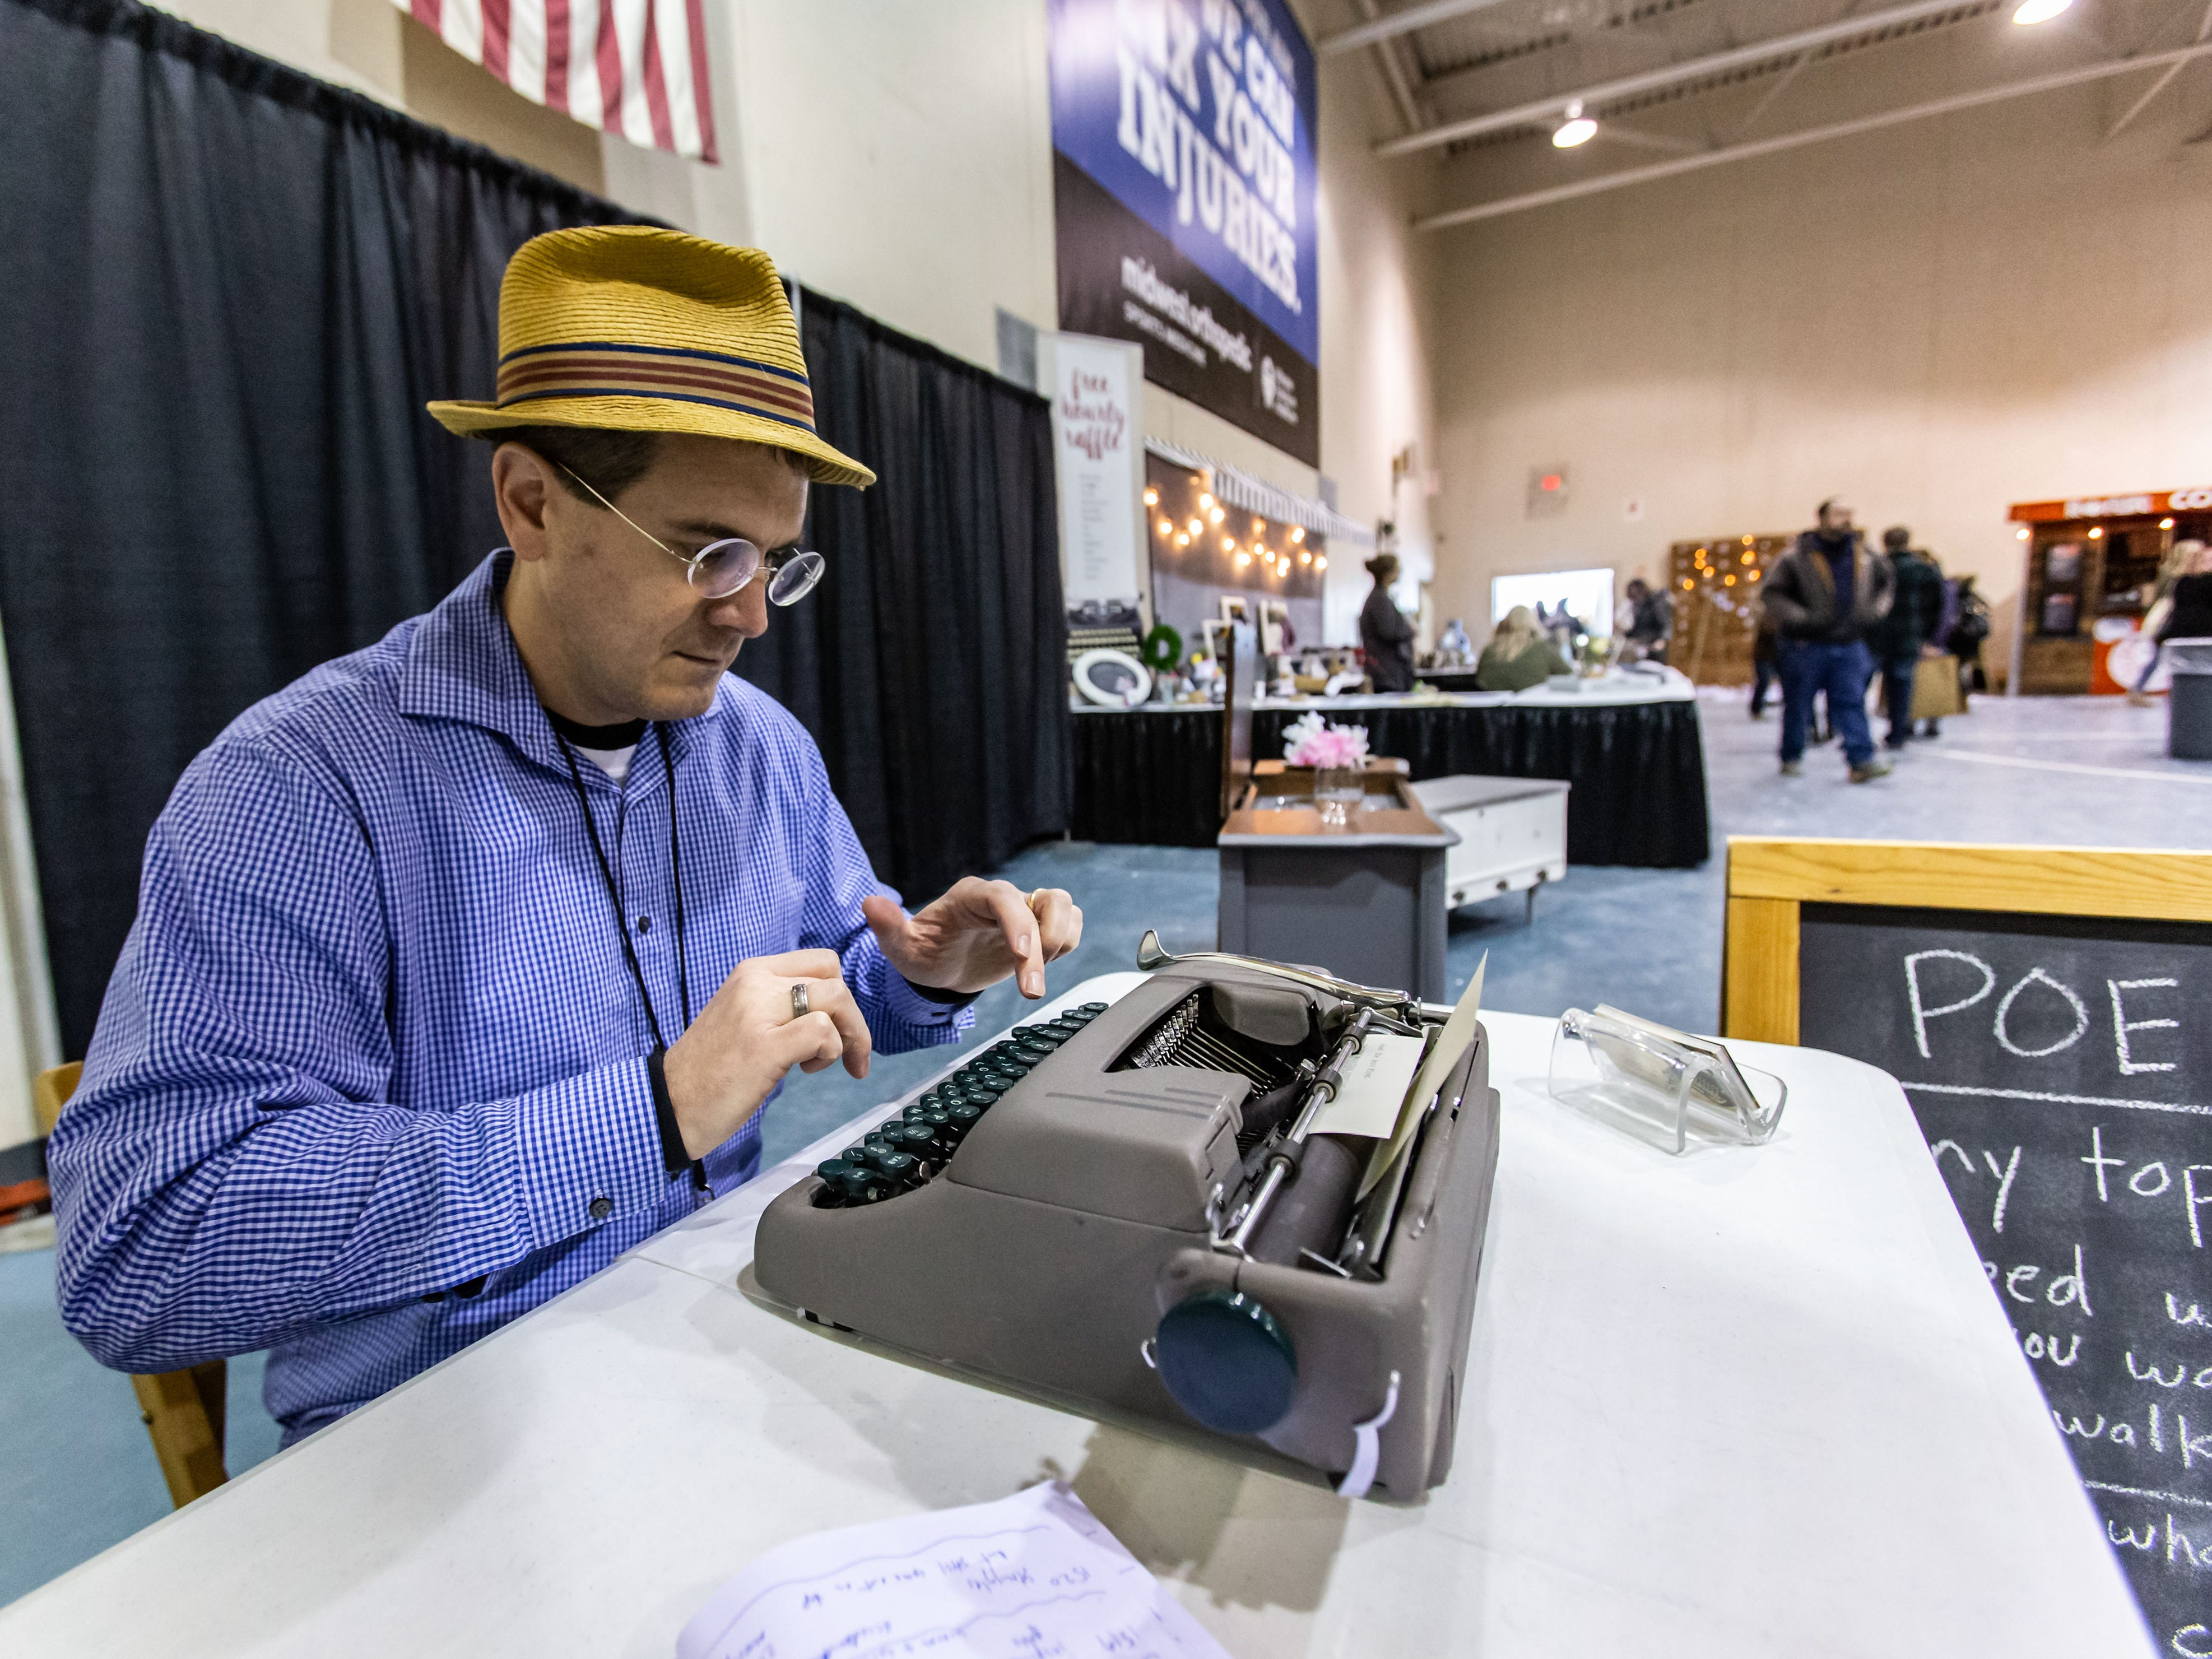 Paul Wiegel of the Fox River Poetry Co. in Berlin serves up personalized poems during the re:Craft and Relic show at the Milwaukee County Sports Complex in Franklin on Sunday, Jan. 27, 2019. The show offers vintage, upcycled, antique, handcrafted, reclaimed, and locally-sourced goods.